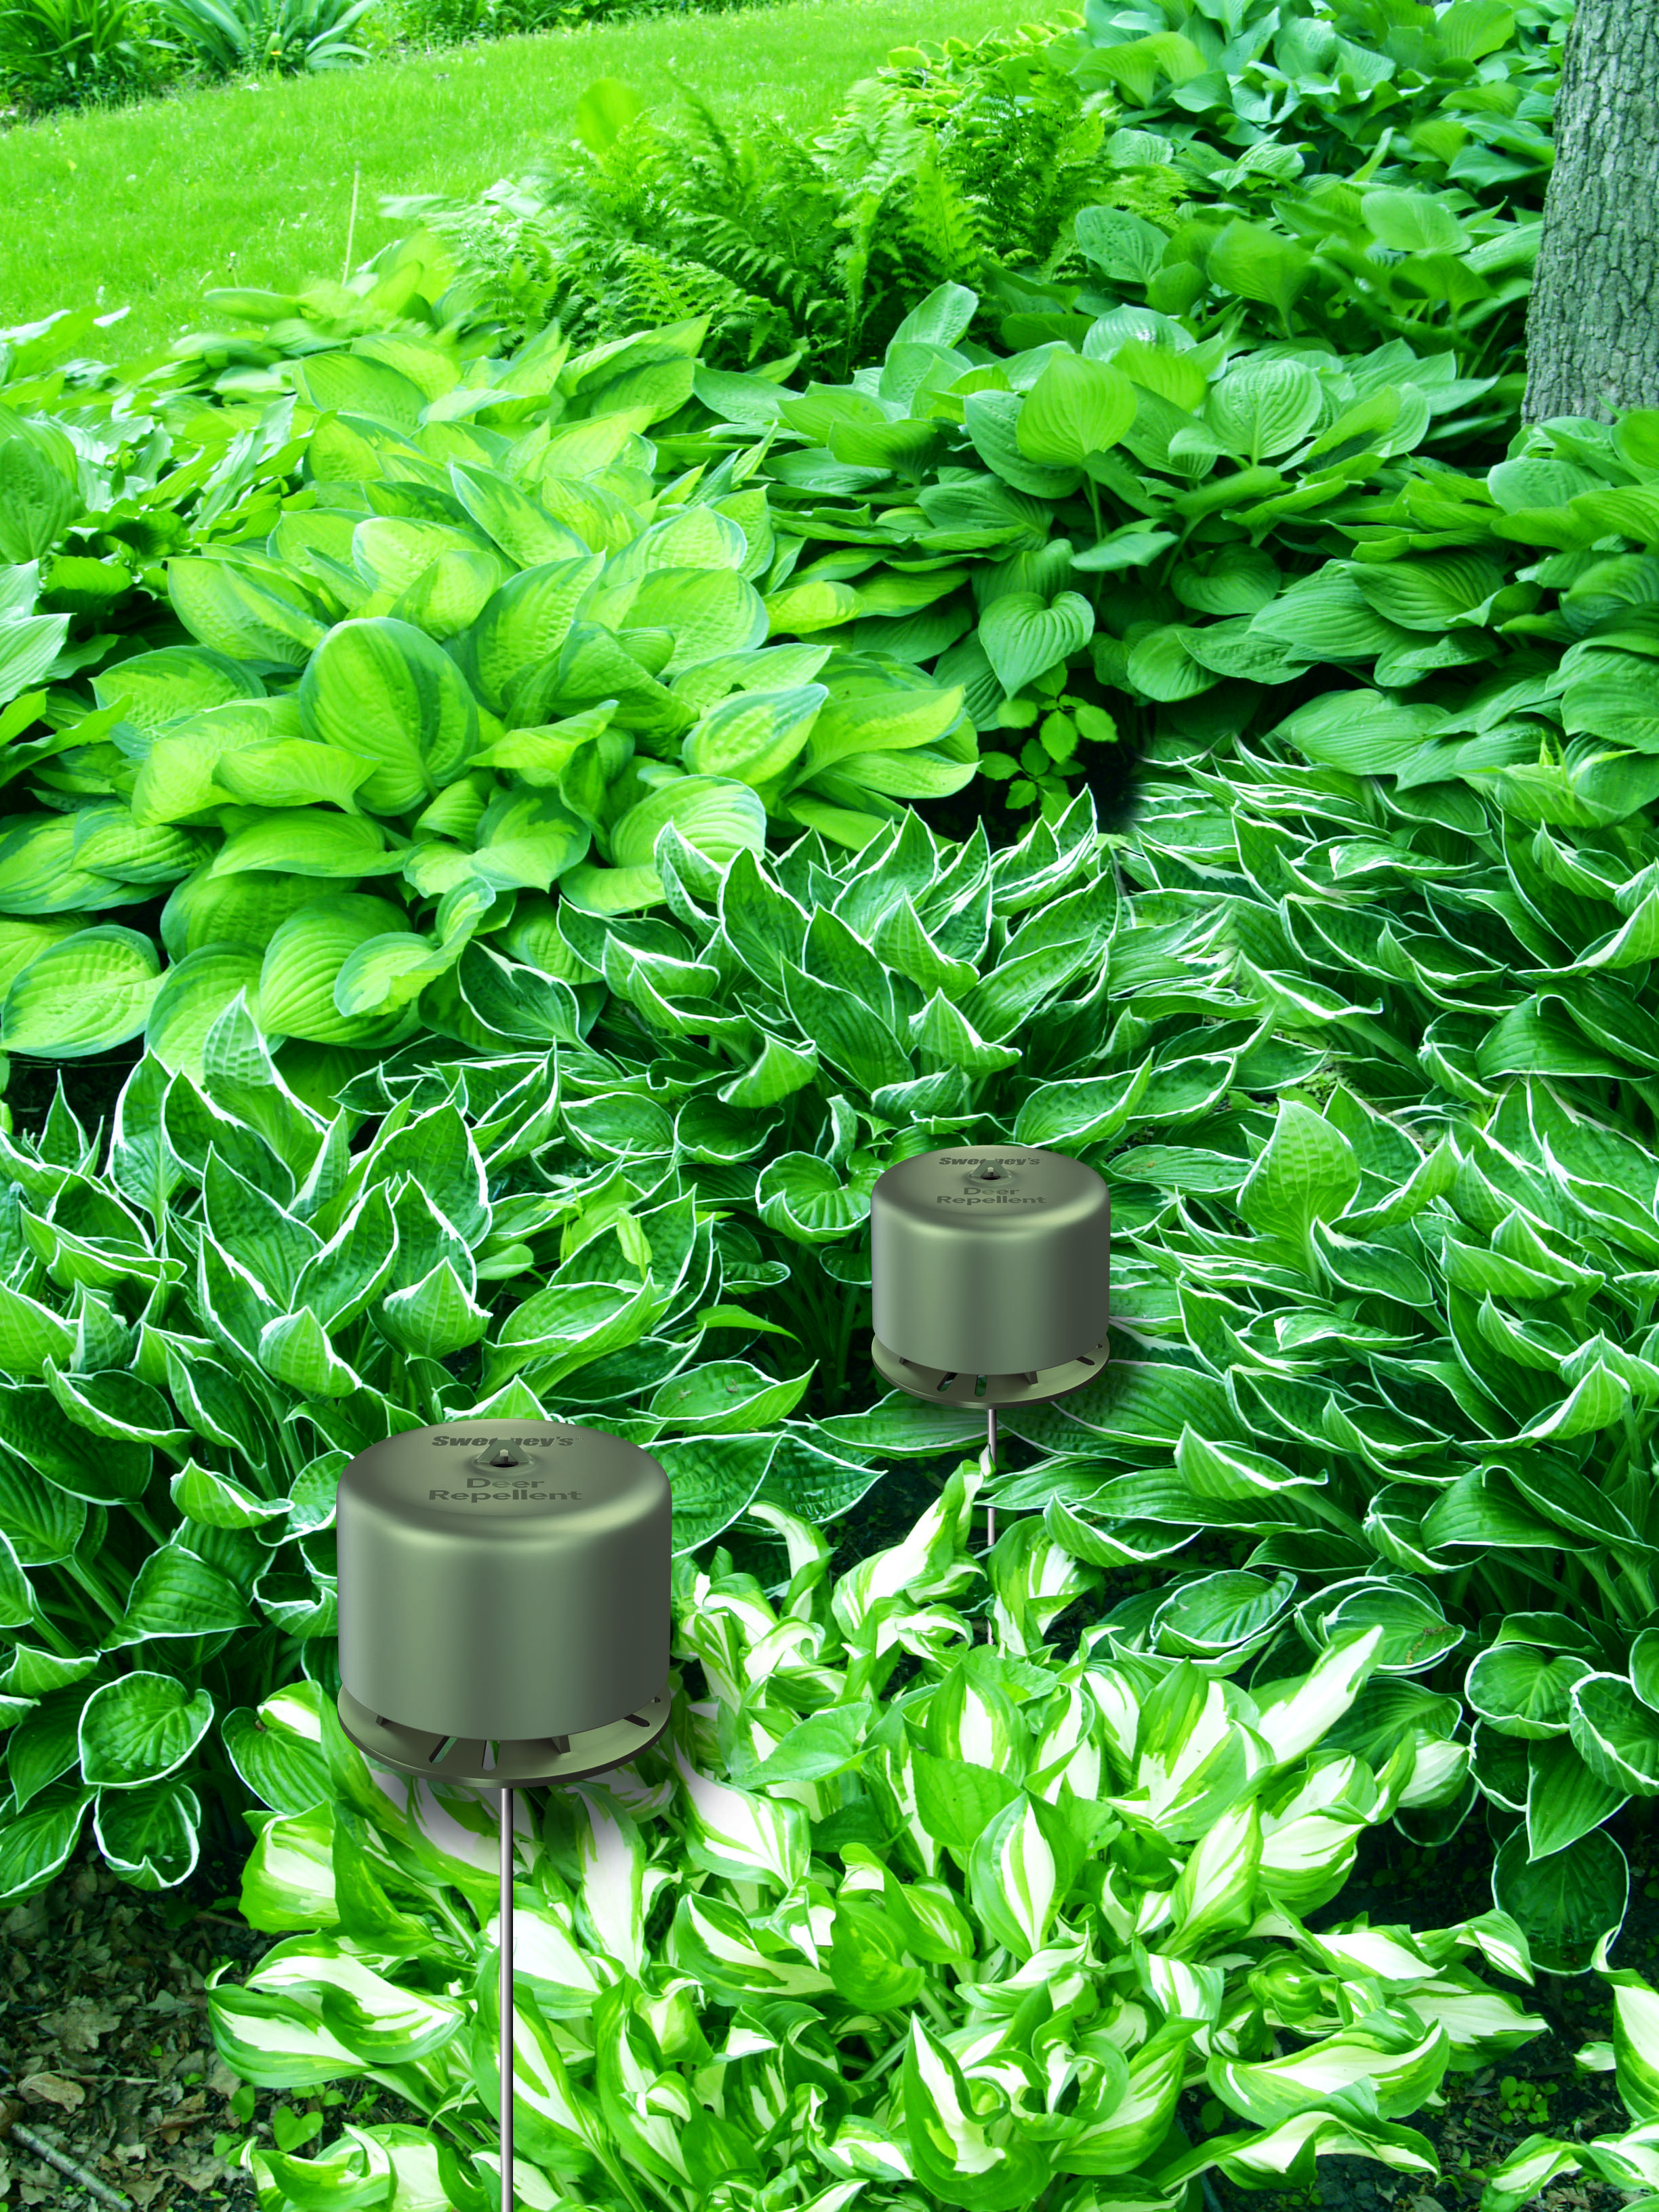 Perfect Repellent For GardensProtect Vegetable Gardens And Other Edible  Crops From Deer Without The Repellents Coming Into Contact With The Leaves  Or Fruit.